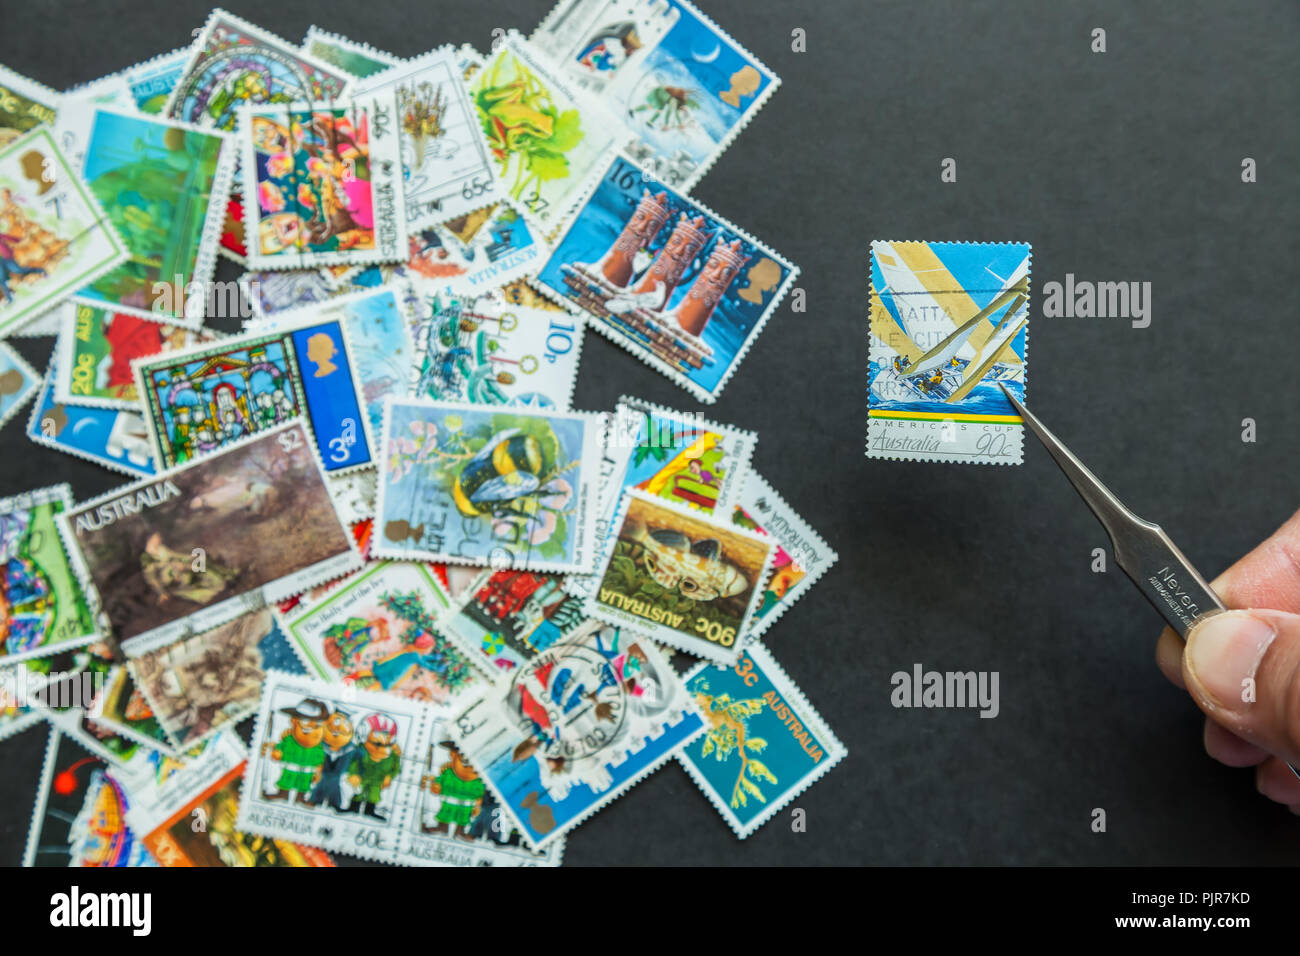 Assortment of international used stamps - Stock Image